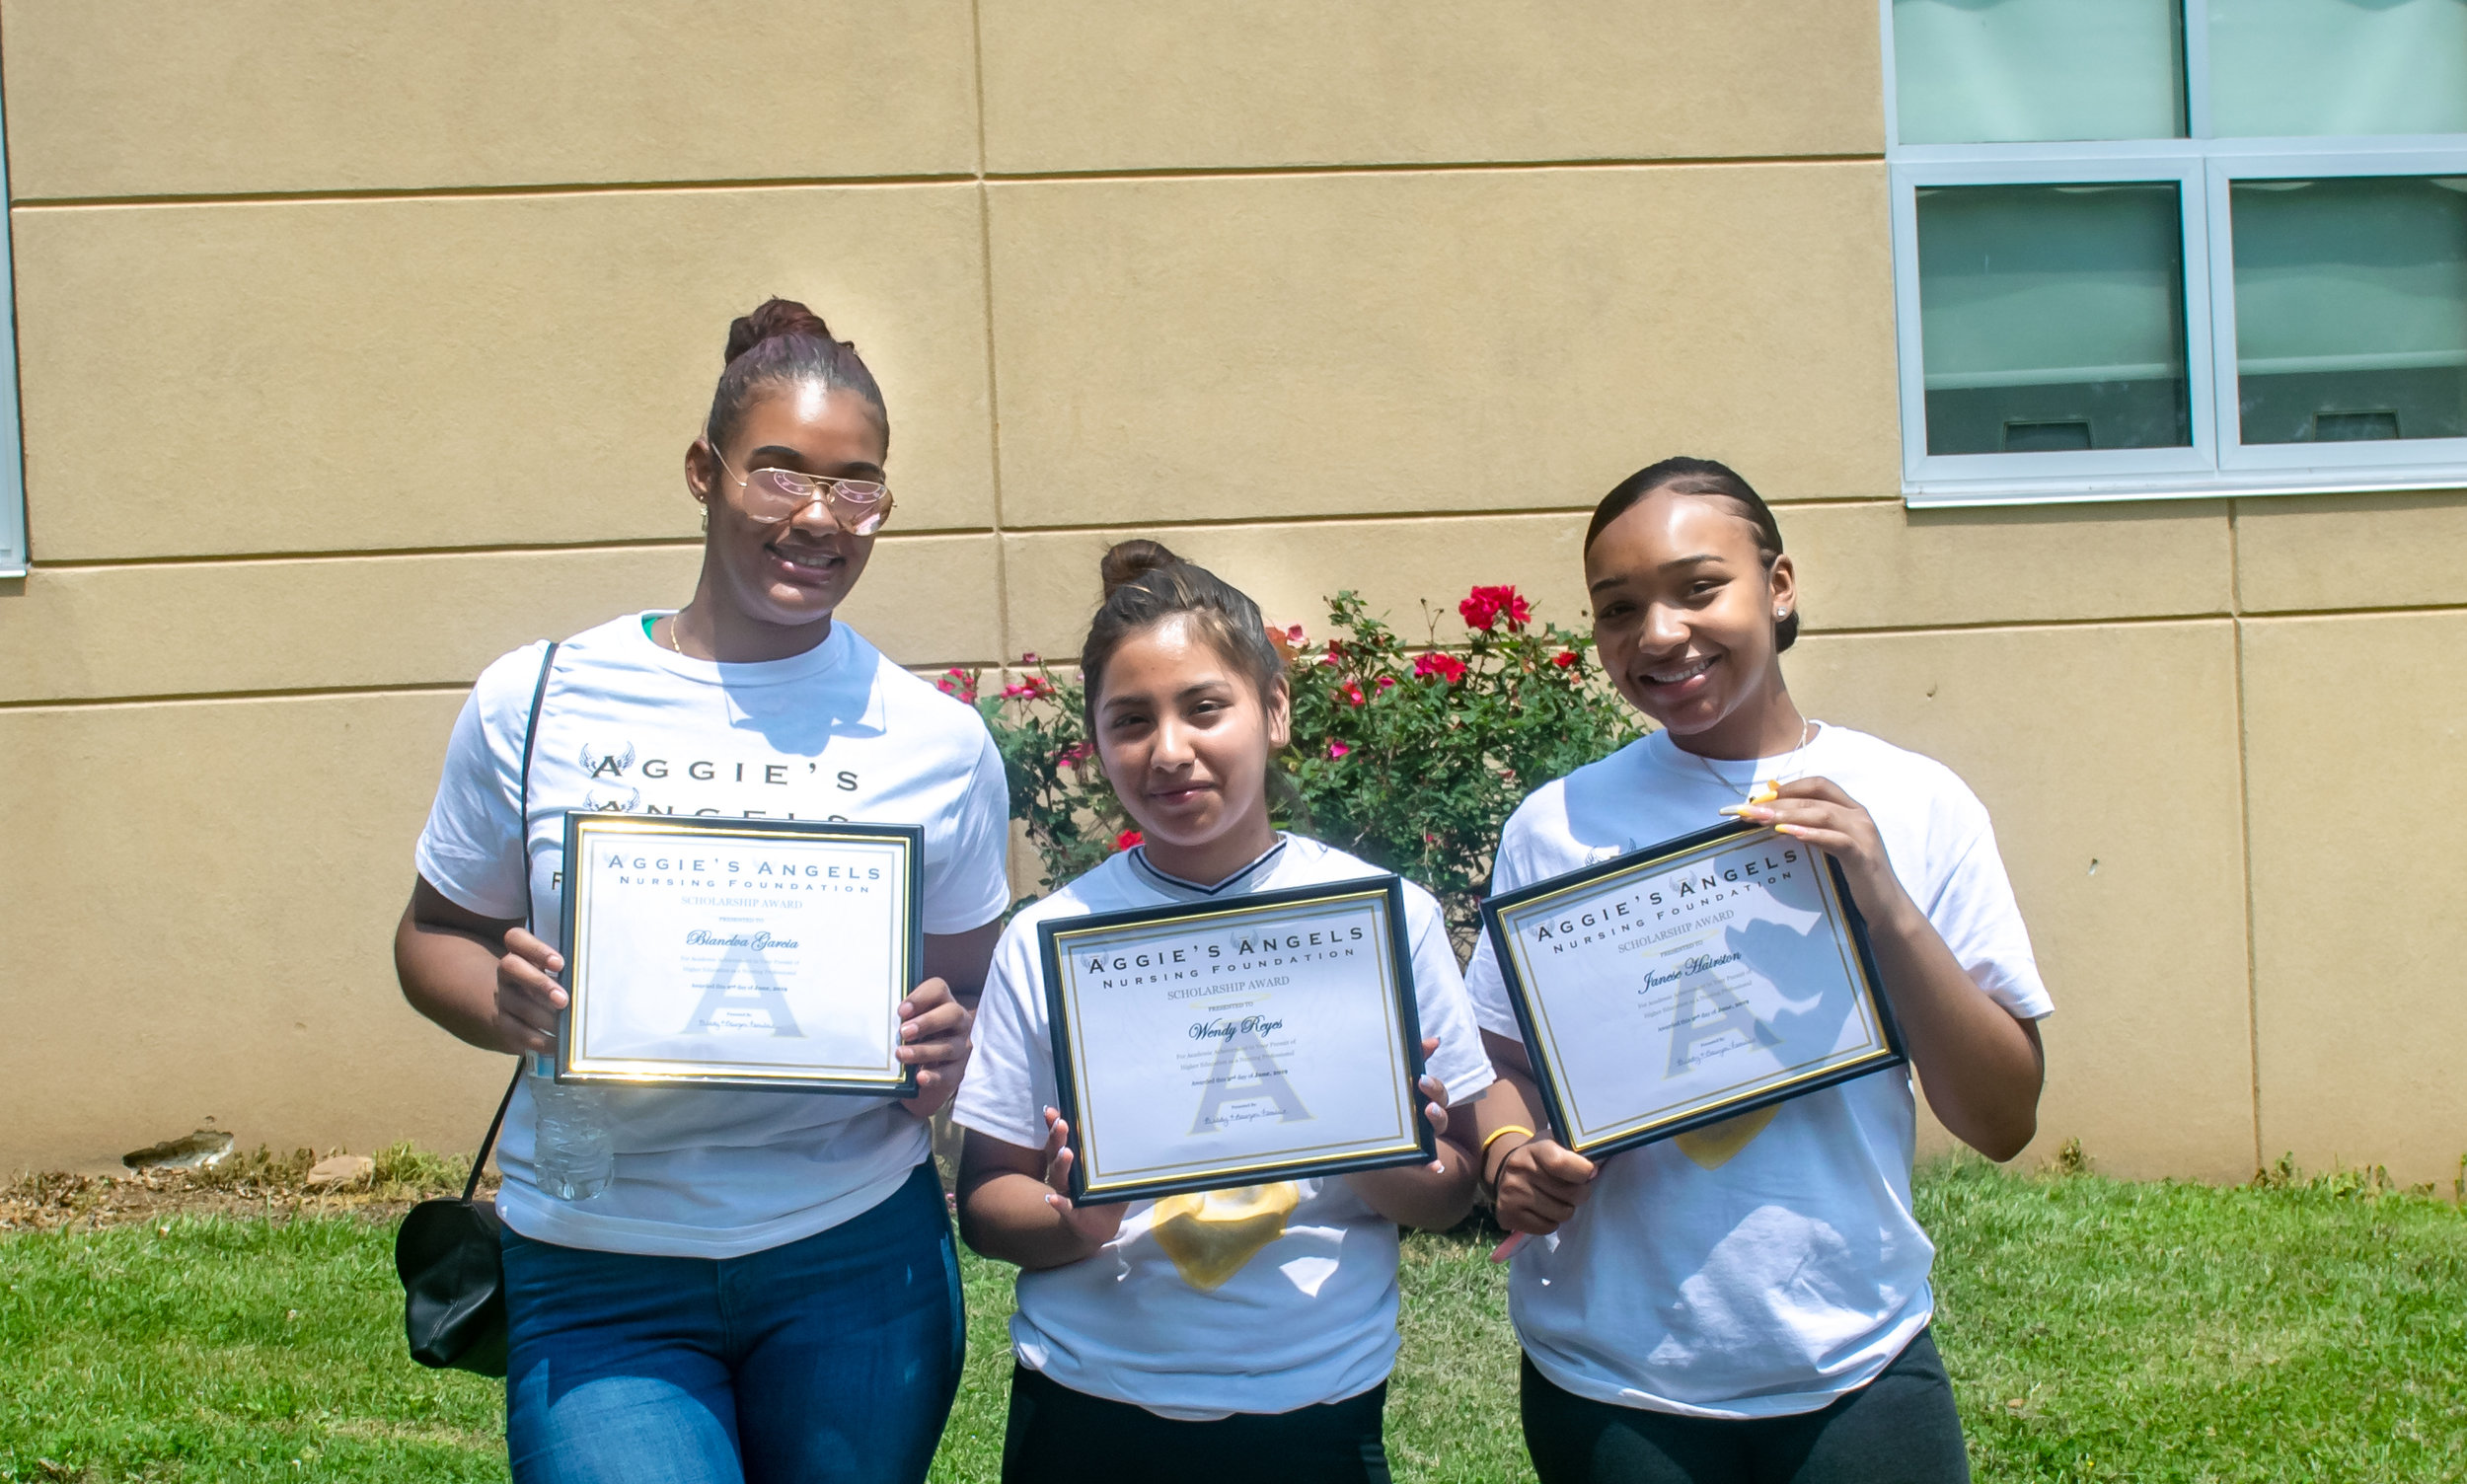 Three ambitious high school students awarded grants toward nursing school! Aggie's Angels Foundation for aspiring Nursing students Sponsored by March Construction.